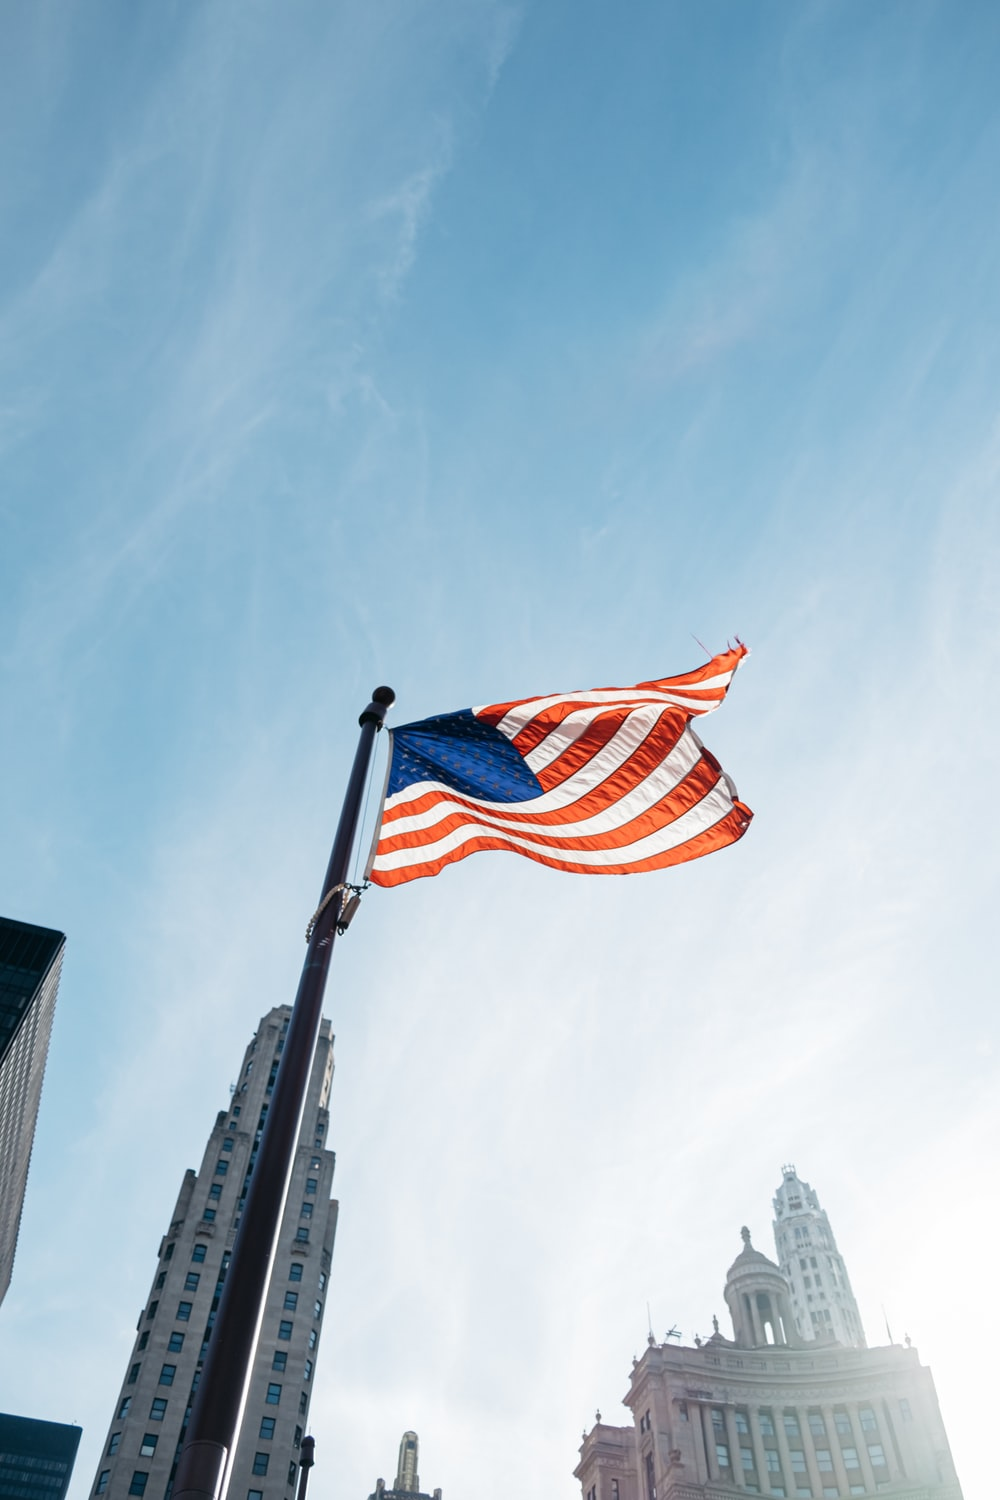 United States of America flag waving during daytime